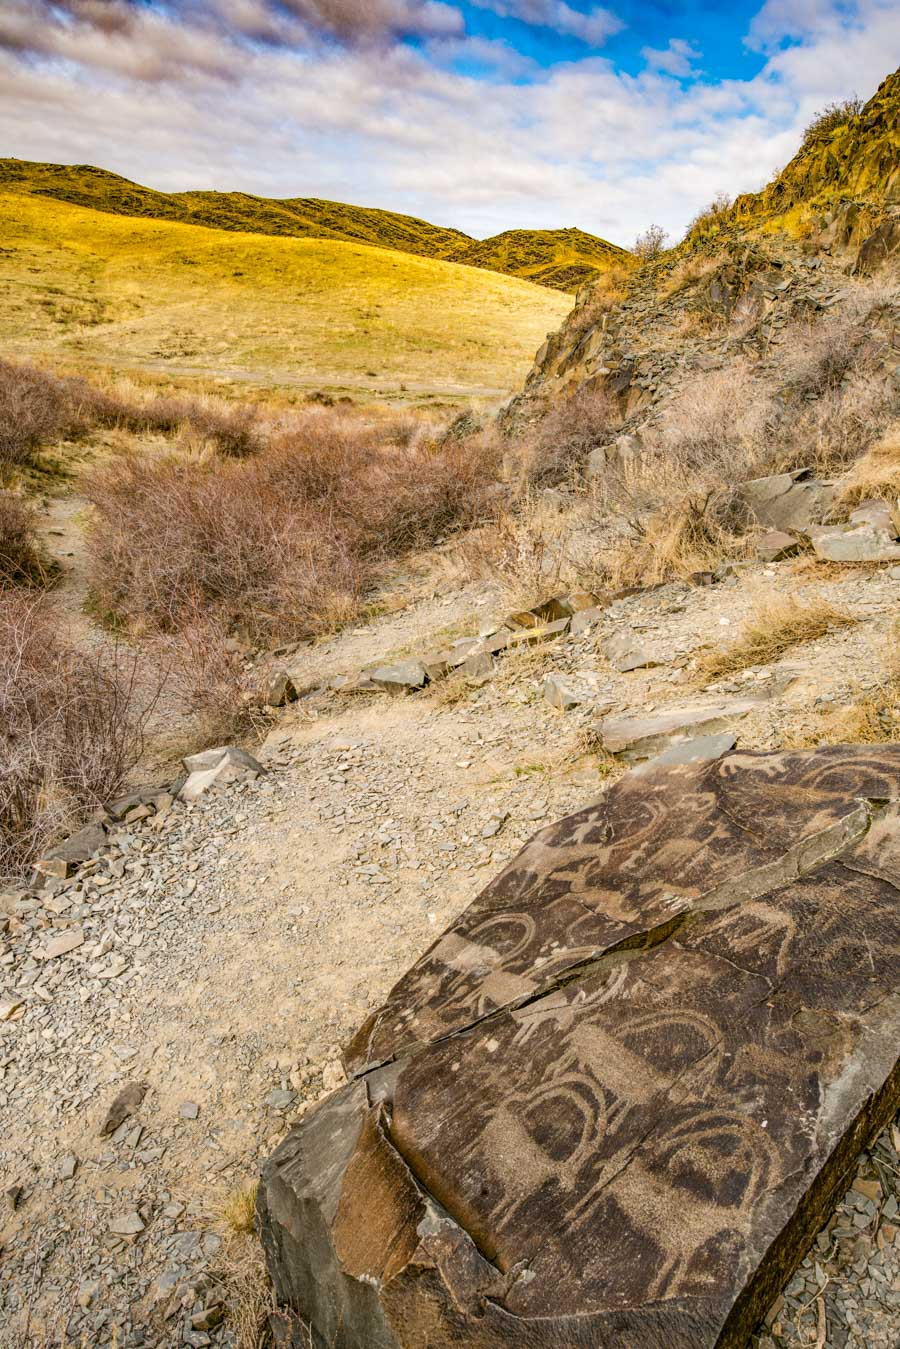 Petroglyphs at Tamgaly Archaeological Landscape, Photographed by Tom Till